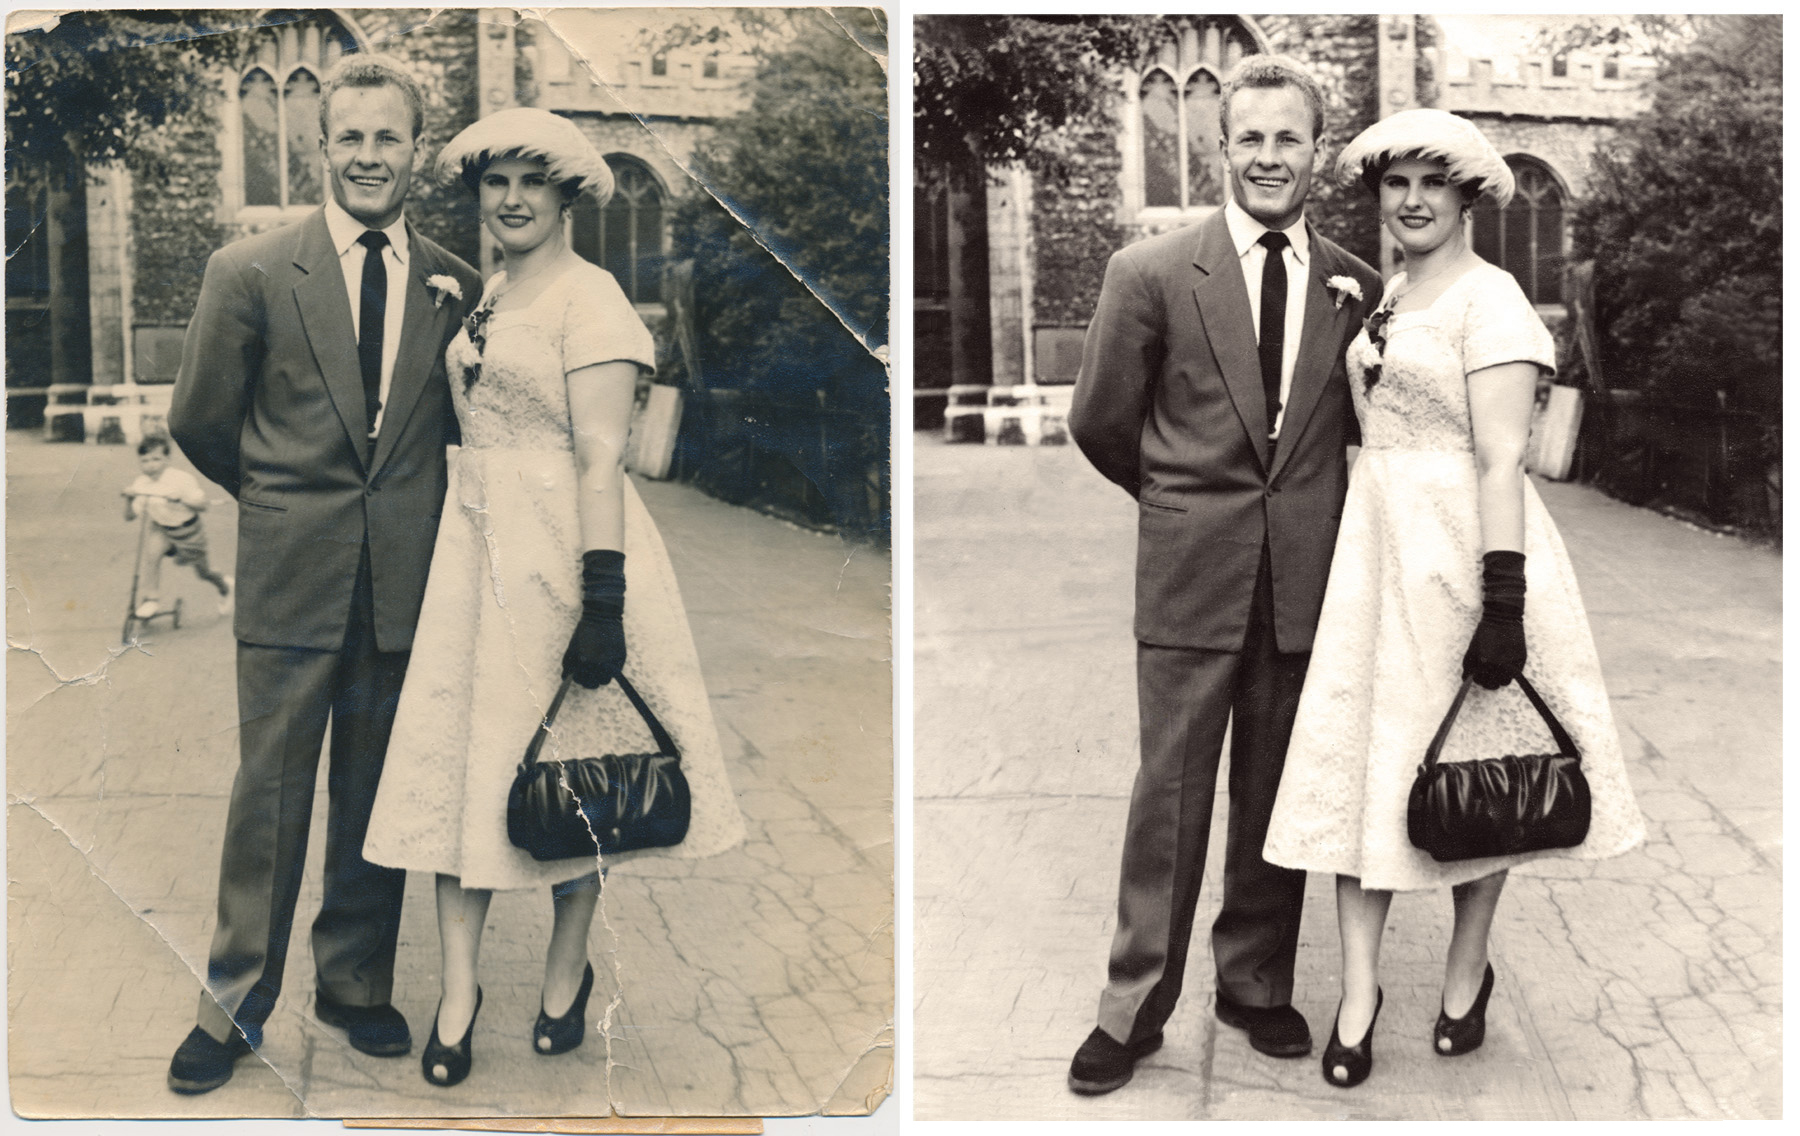 restore-old-photos-services-derry-londonderry.jpg